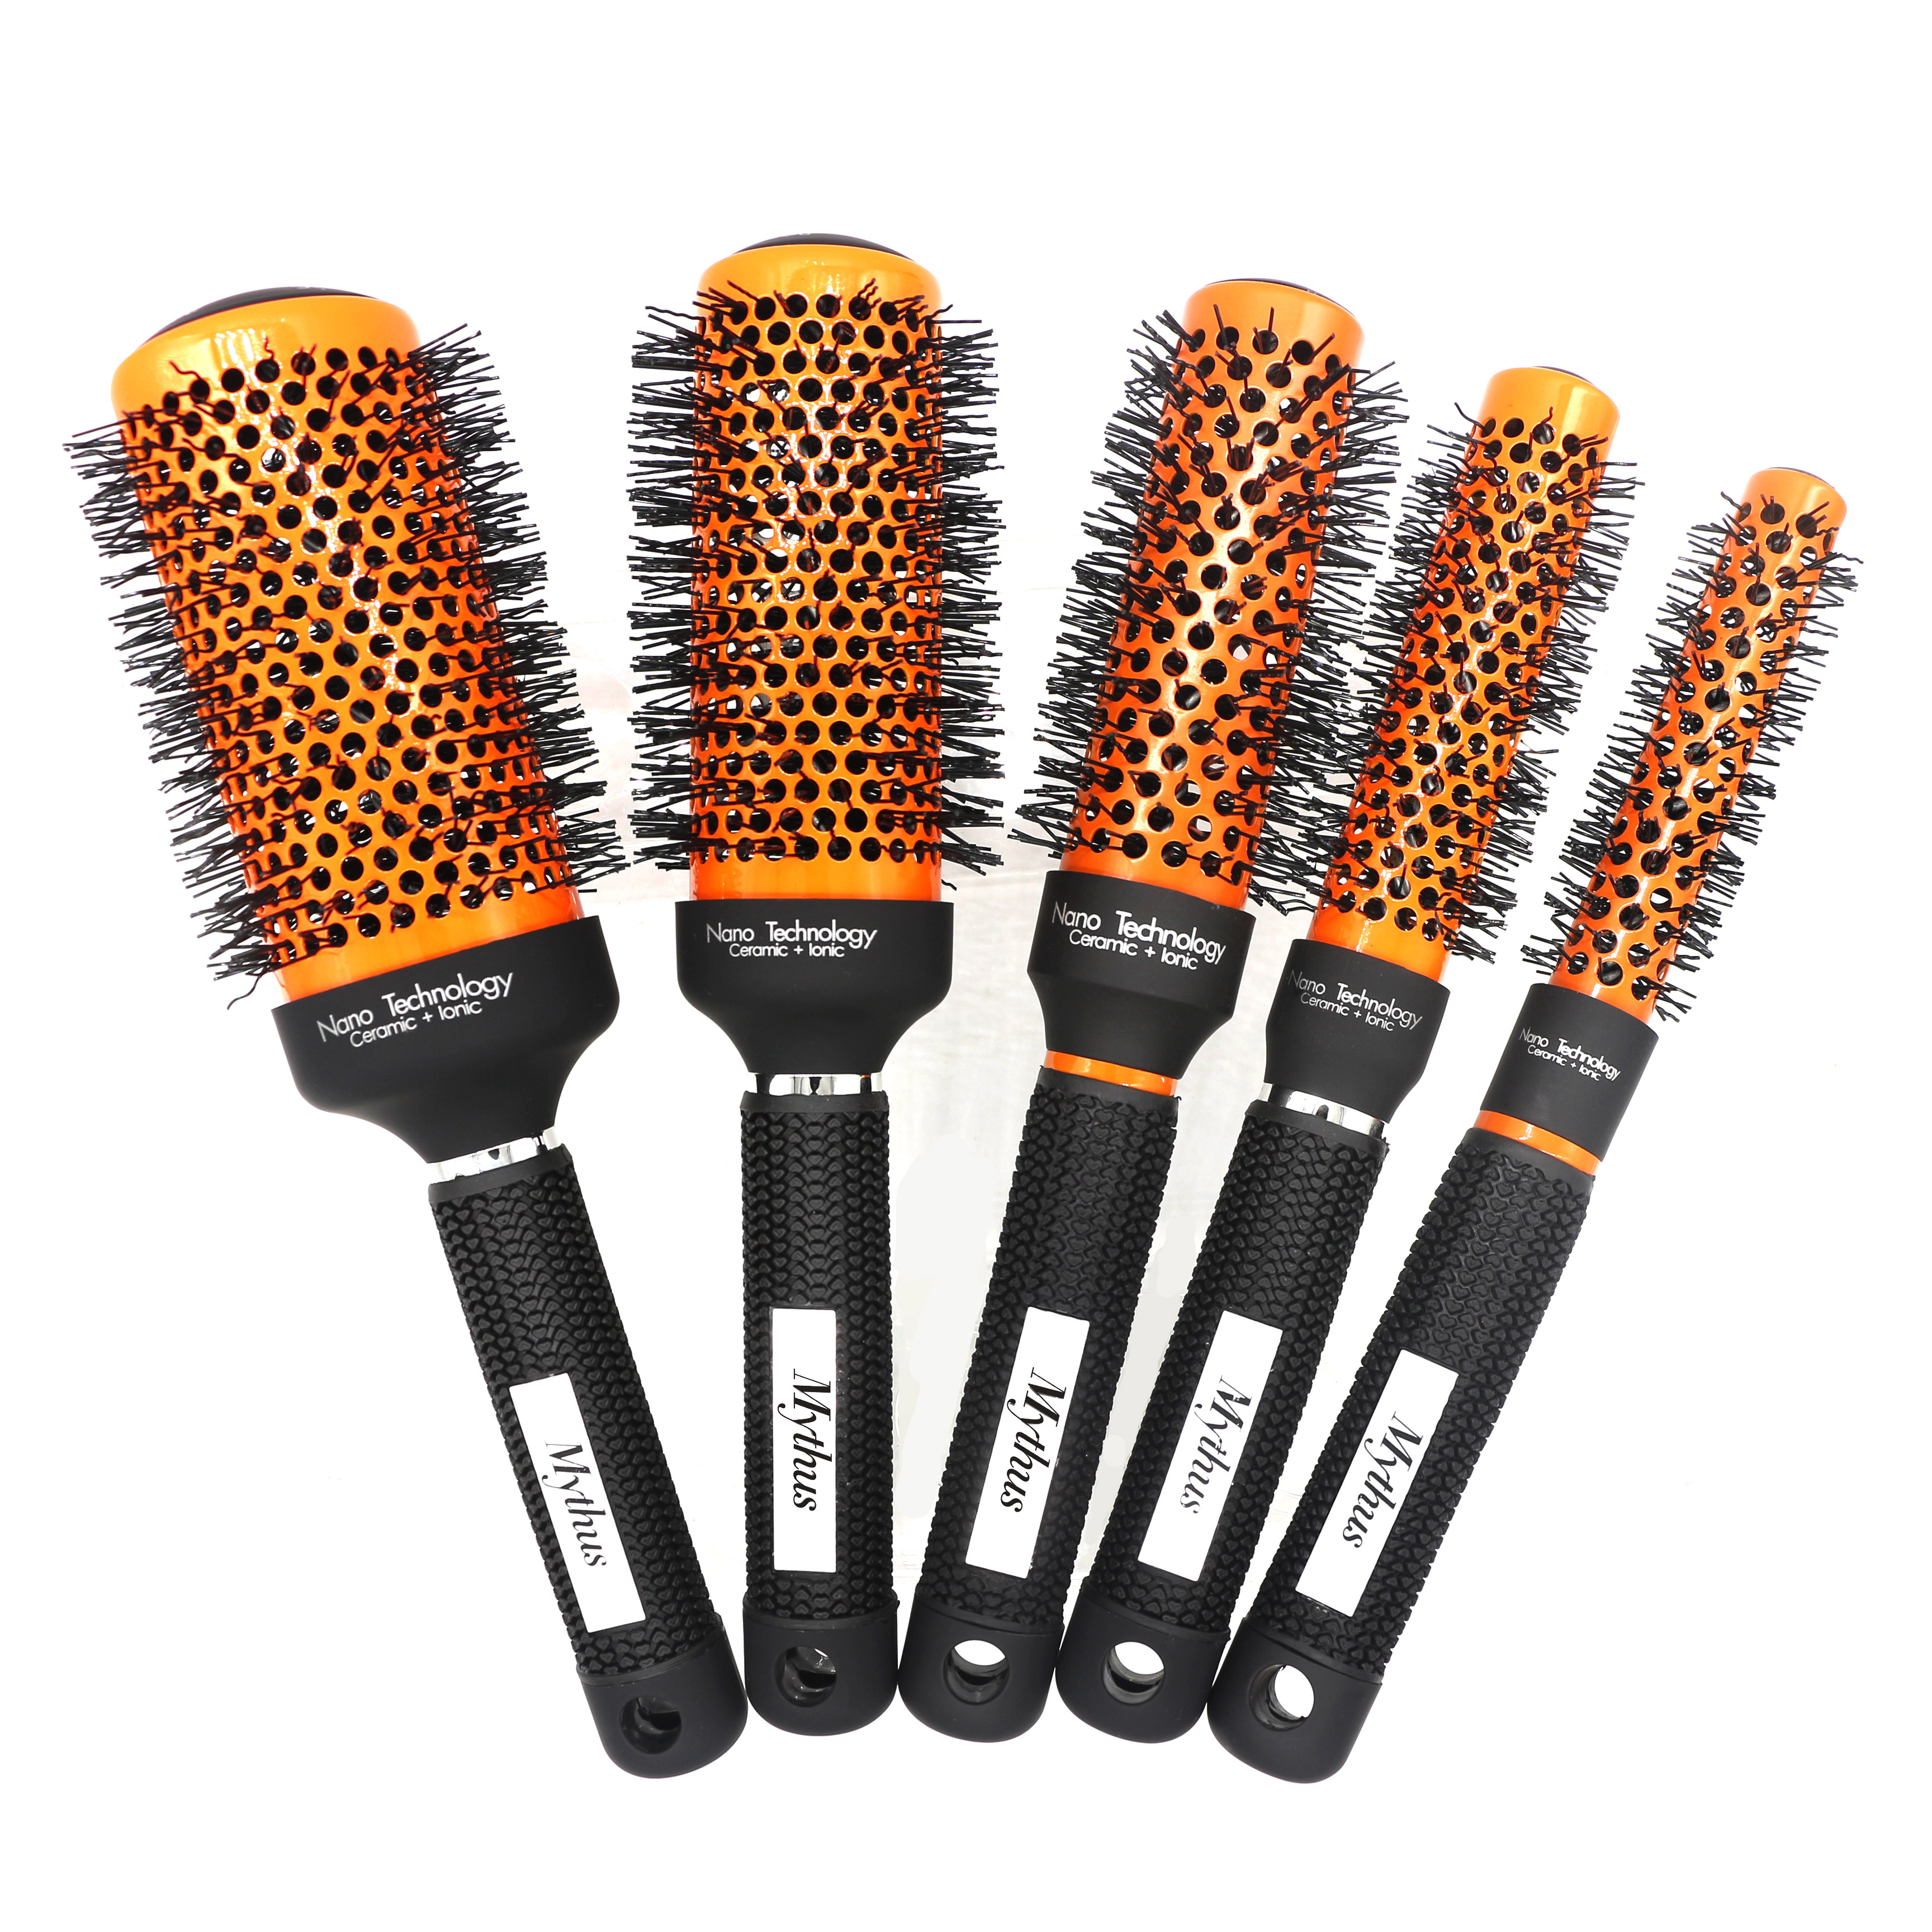 Mythus Orange Hairdressing Round Ceramic Brush 5 Sizes Salon Hairstyling Comb For Hair Curls Ionic Hair Brush Do Not Damage Hair